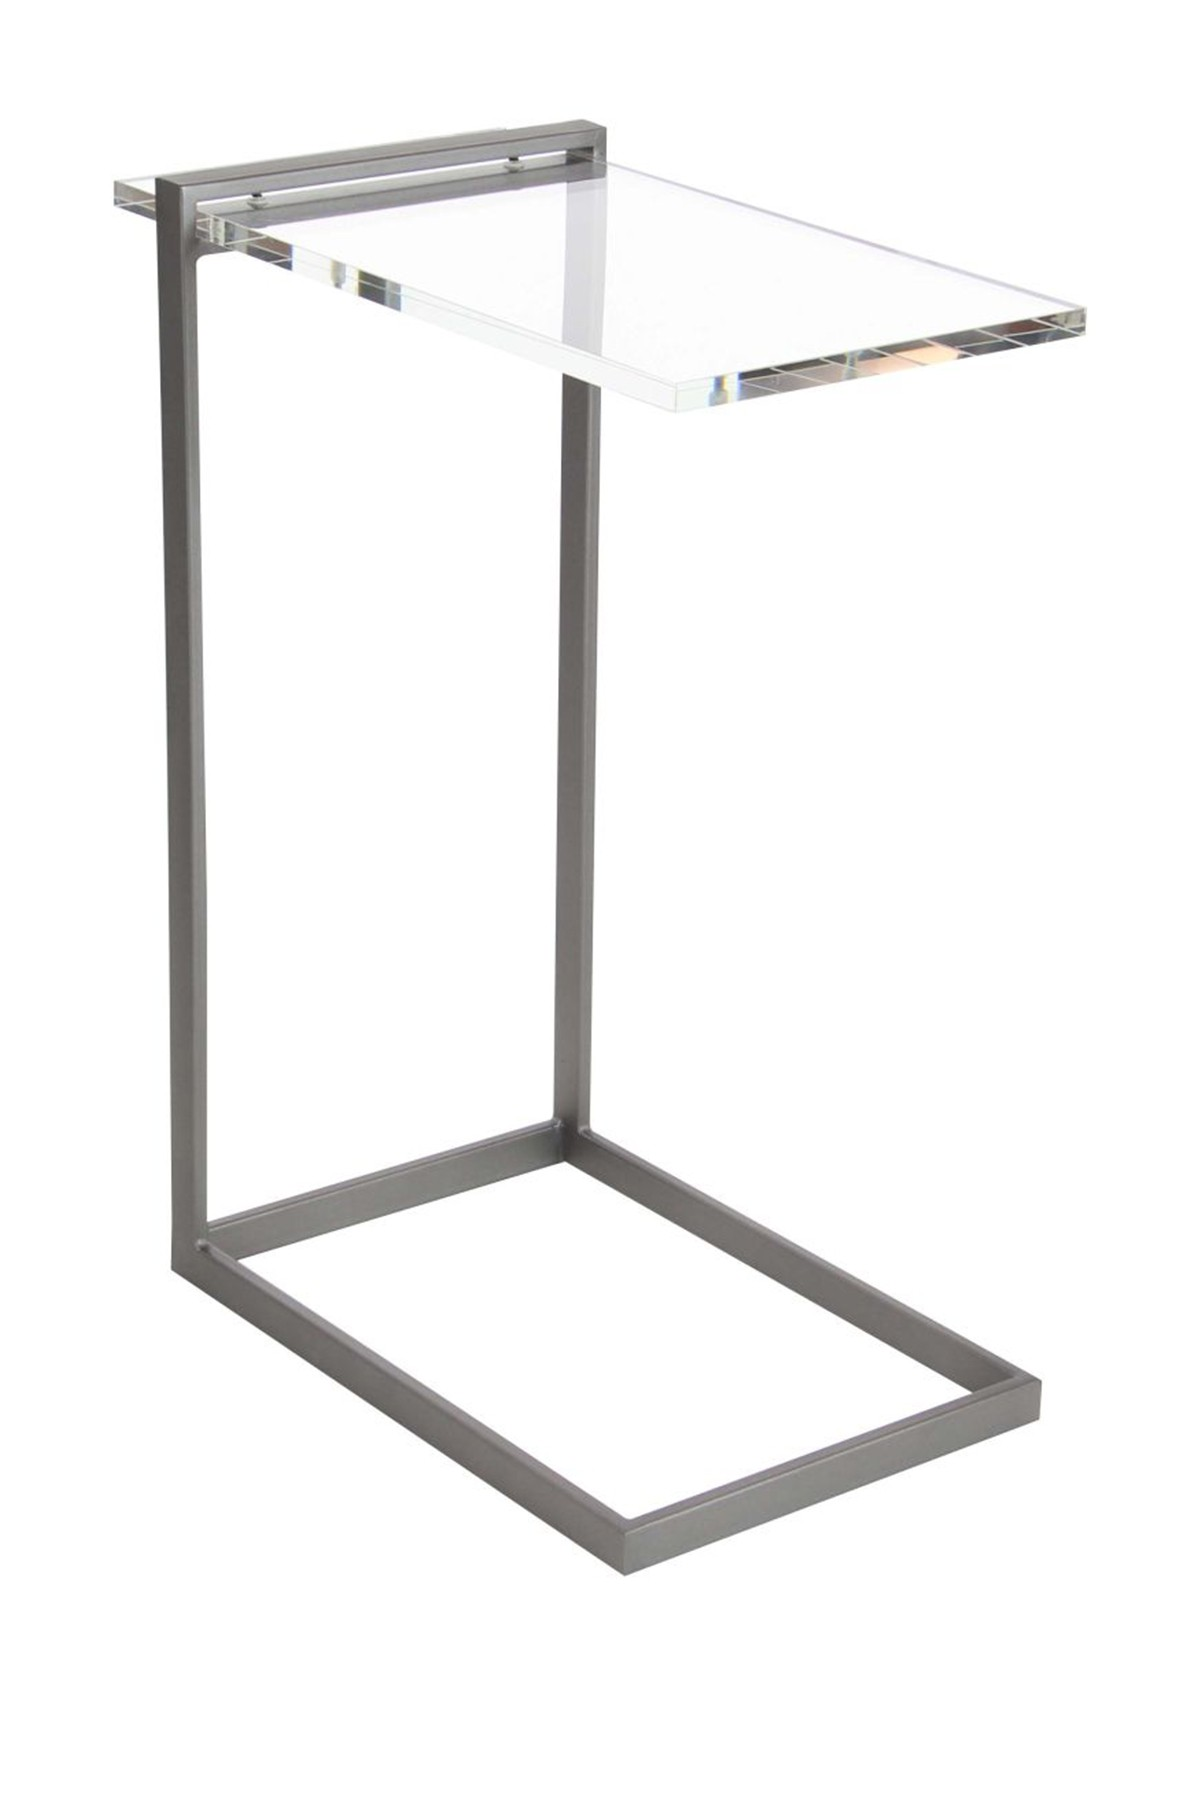 uma clear black acrylic accent table nordstrom rack cordless touch lamp serving cart crystal and glass lamps target kids rugs allen jones fur furniture bistro tablecloths round